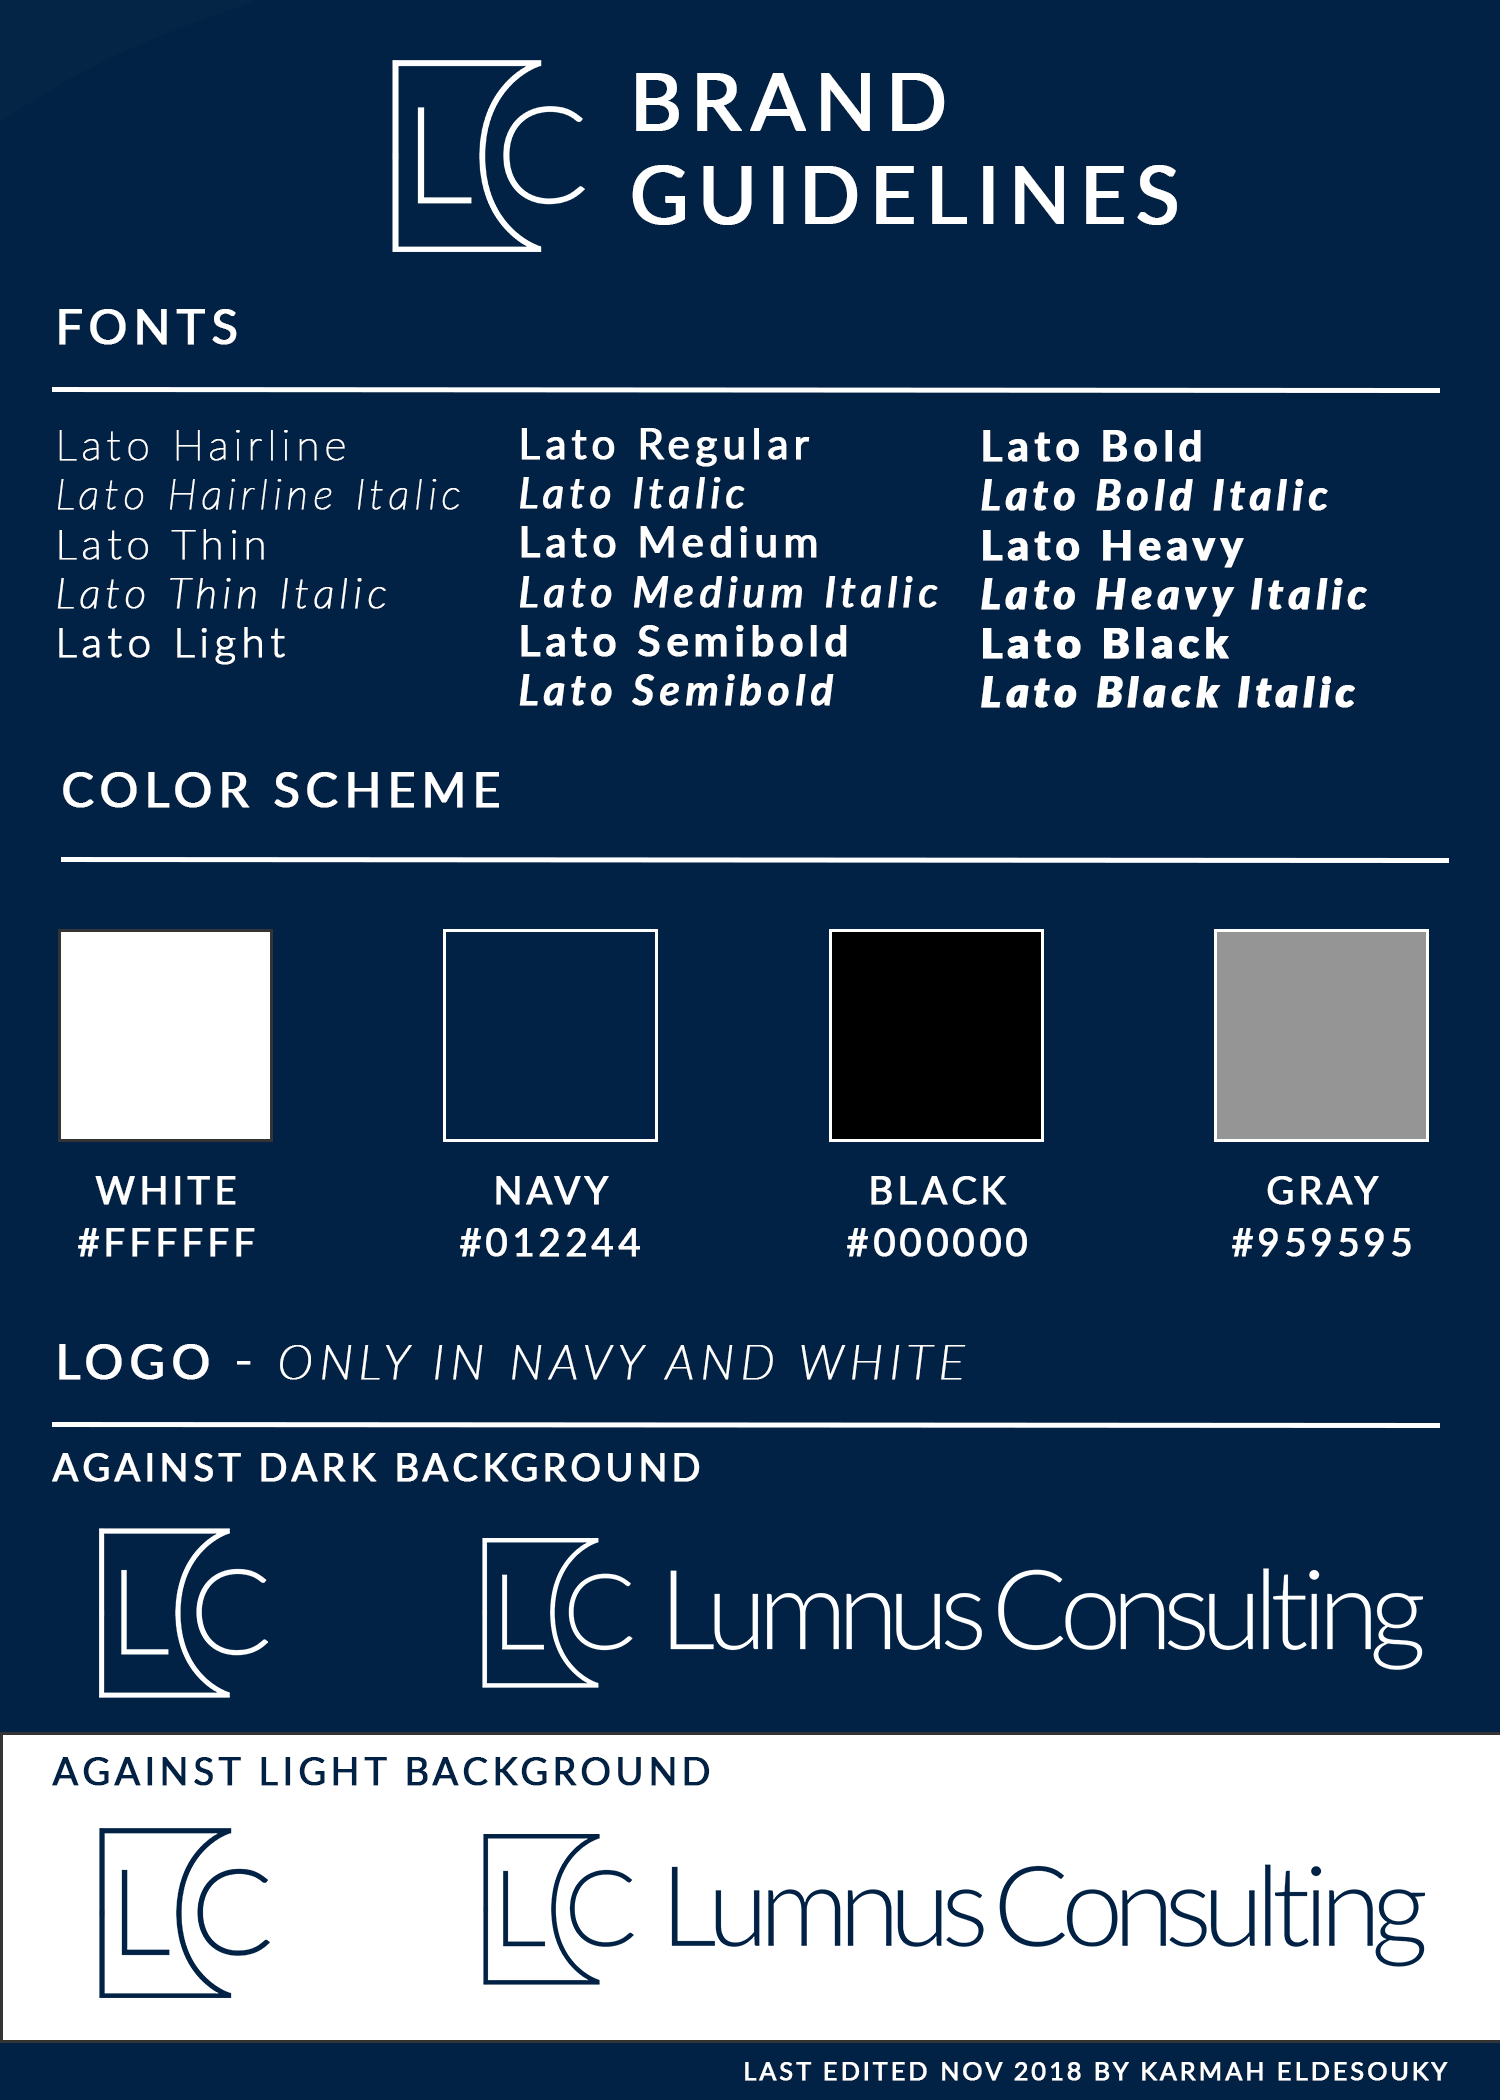 Brand guideline graphic was created and designed in order to establish a cohesive brand identity when creating material on behalf of Lumnus Consulting.